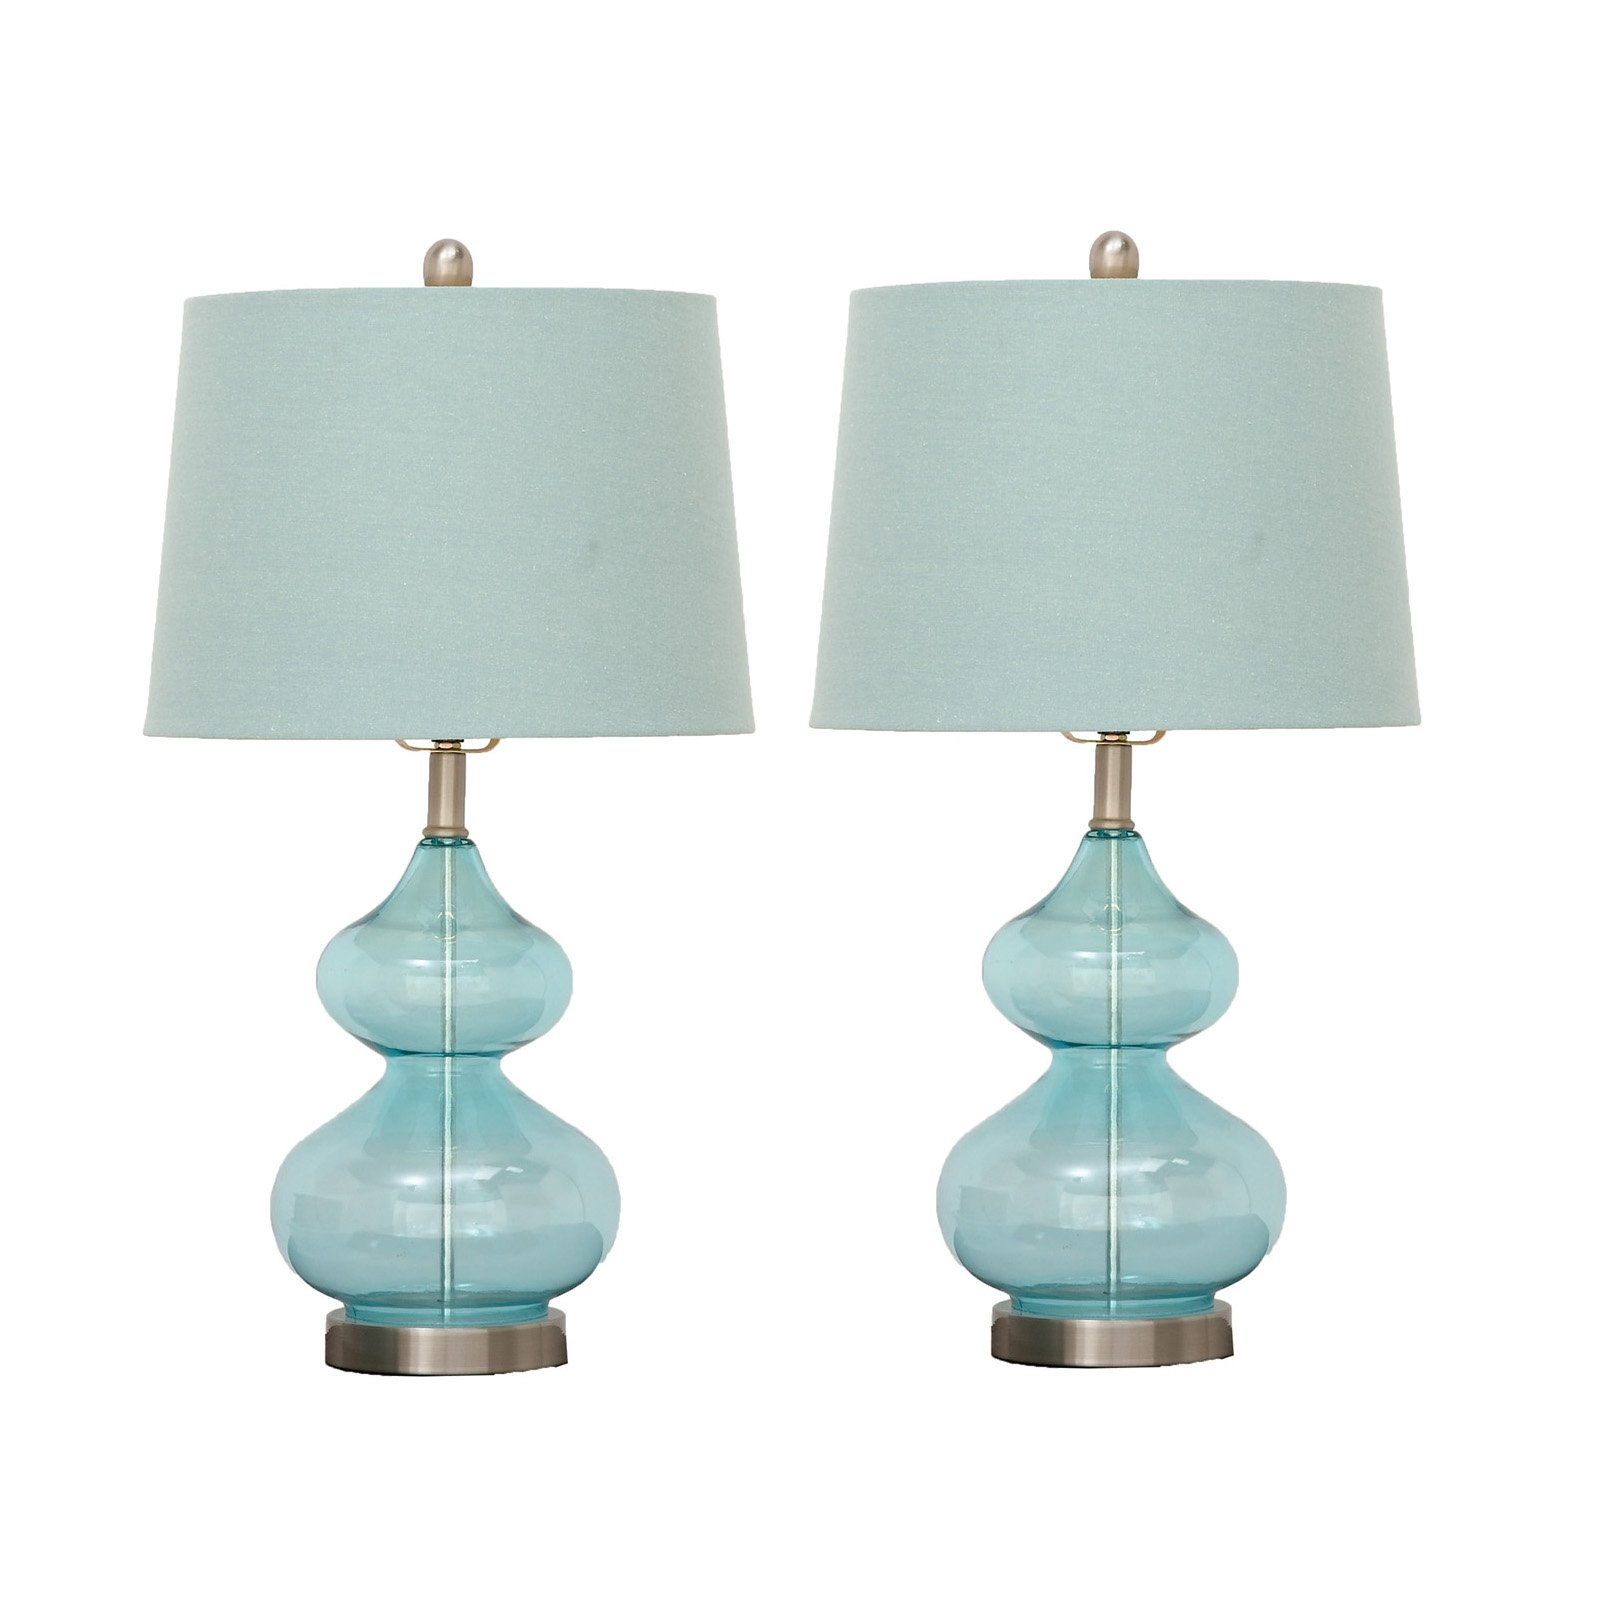 Urban Designs 7749379 Imported Fiona Glass Table Lamp - Set Of 2,Blue by Urban Designs